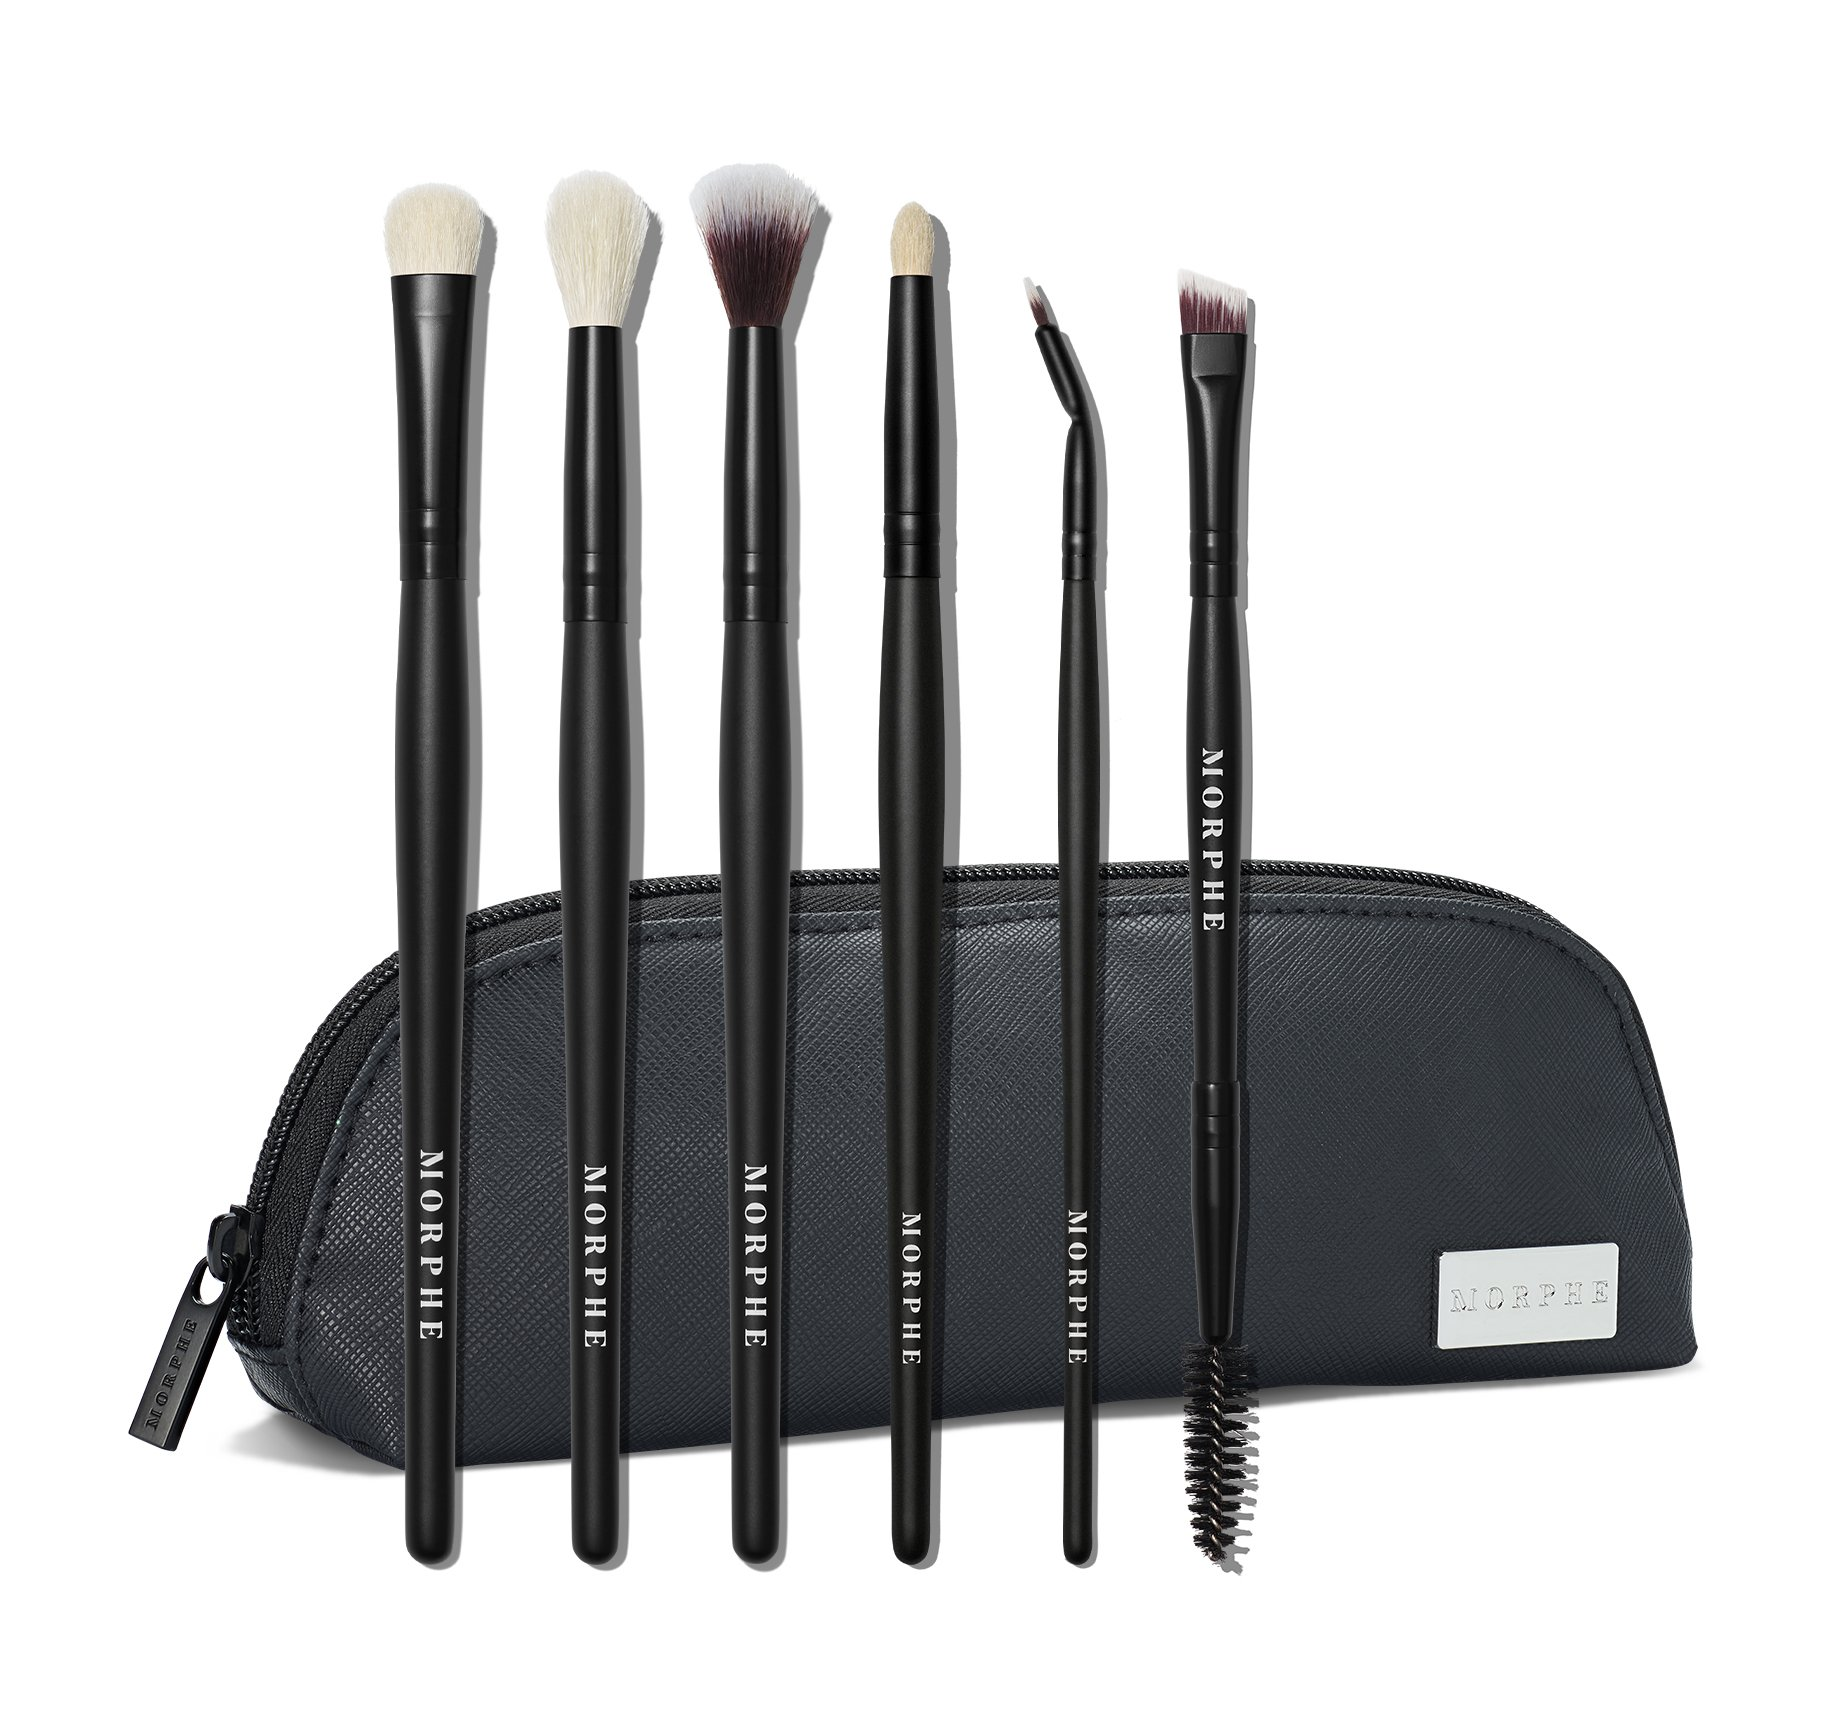 Morphe Eye Stunners Brush Collection Unibeautica Shop today and receive tomorrow! unibeautica